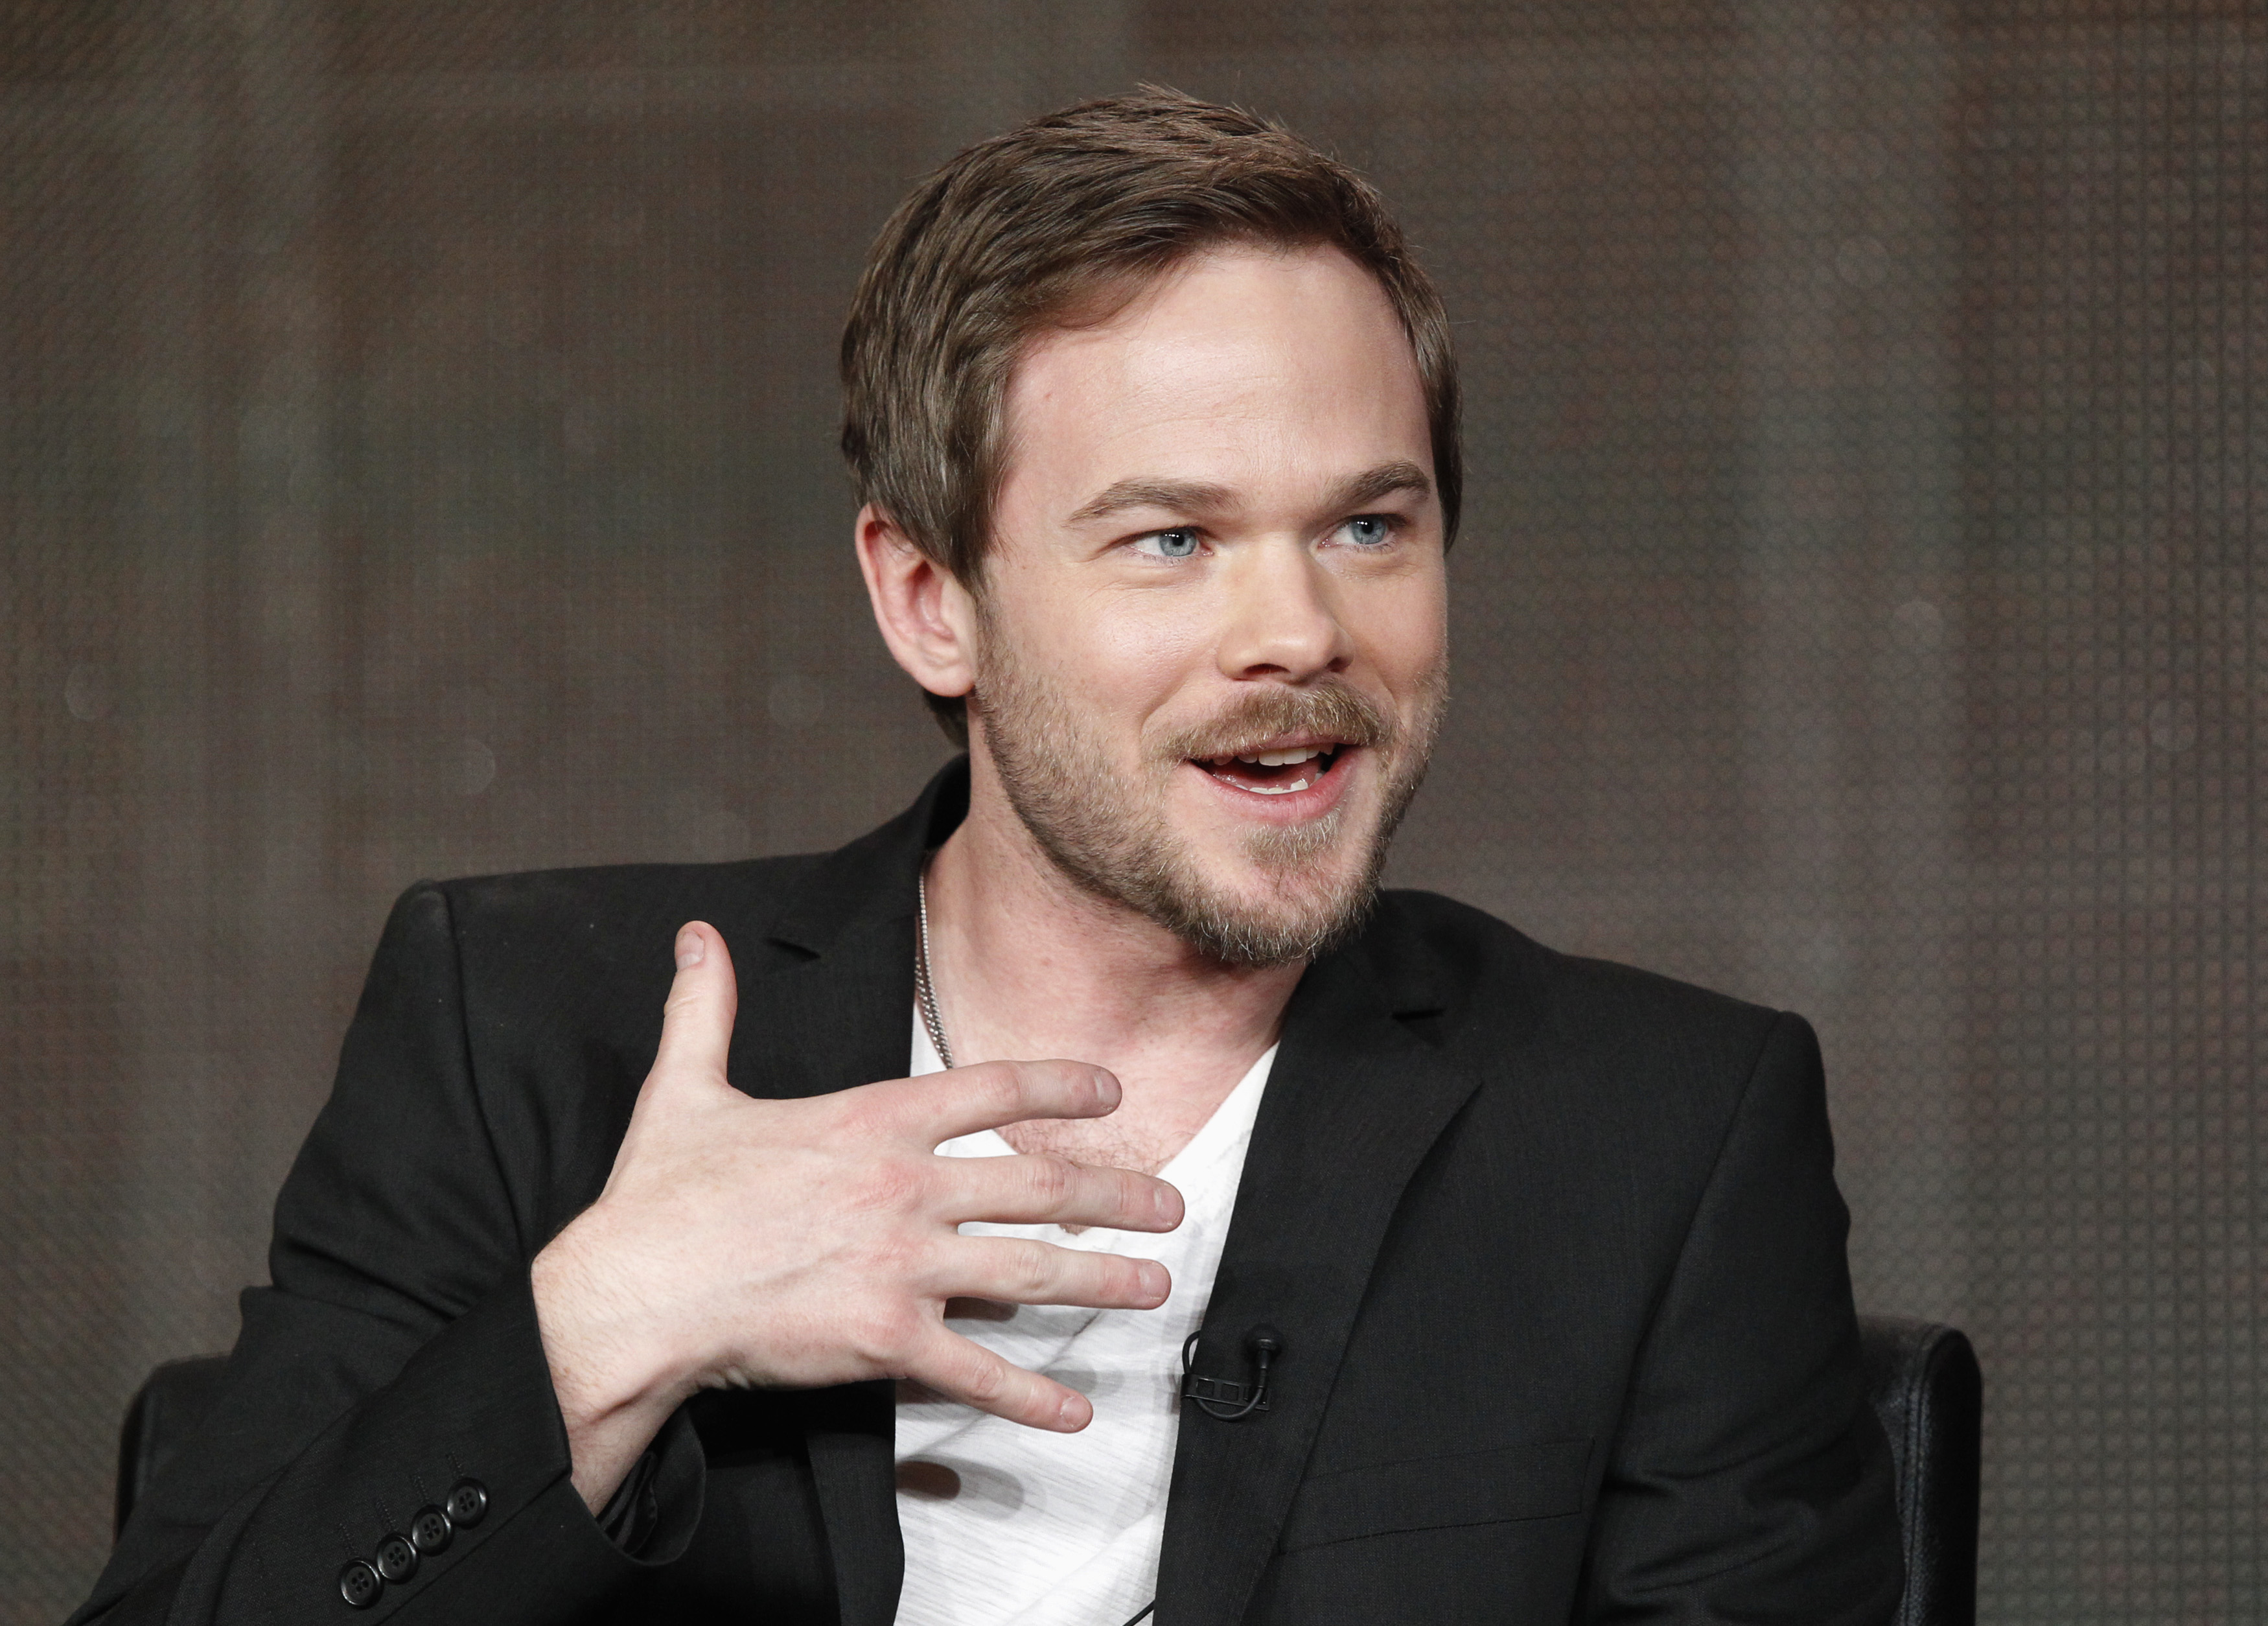 3500x2509 - Shawn Ashmore Wallpapers 14